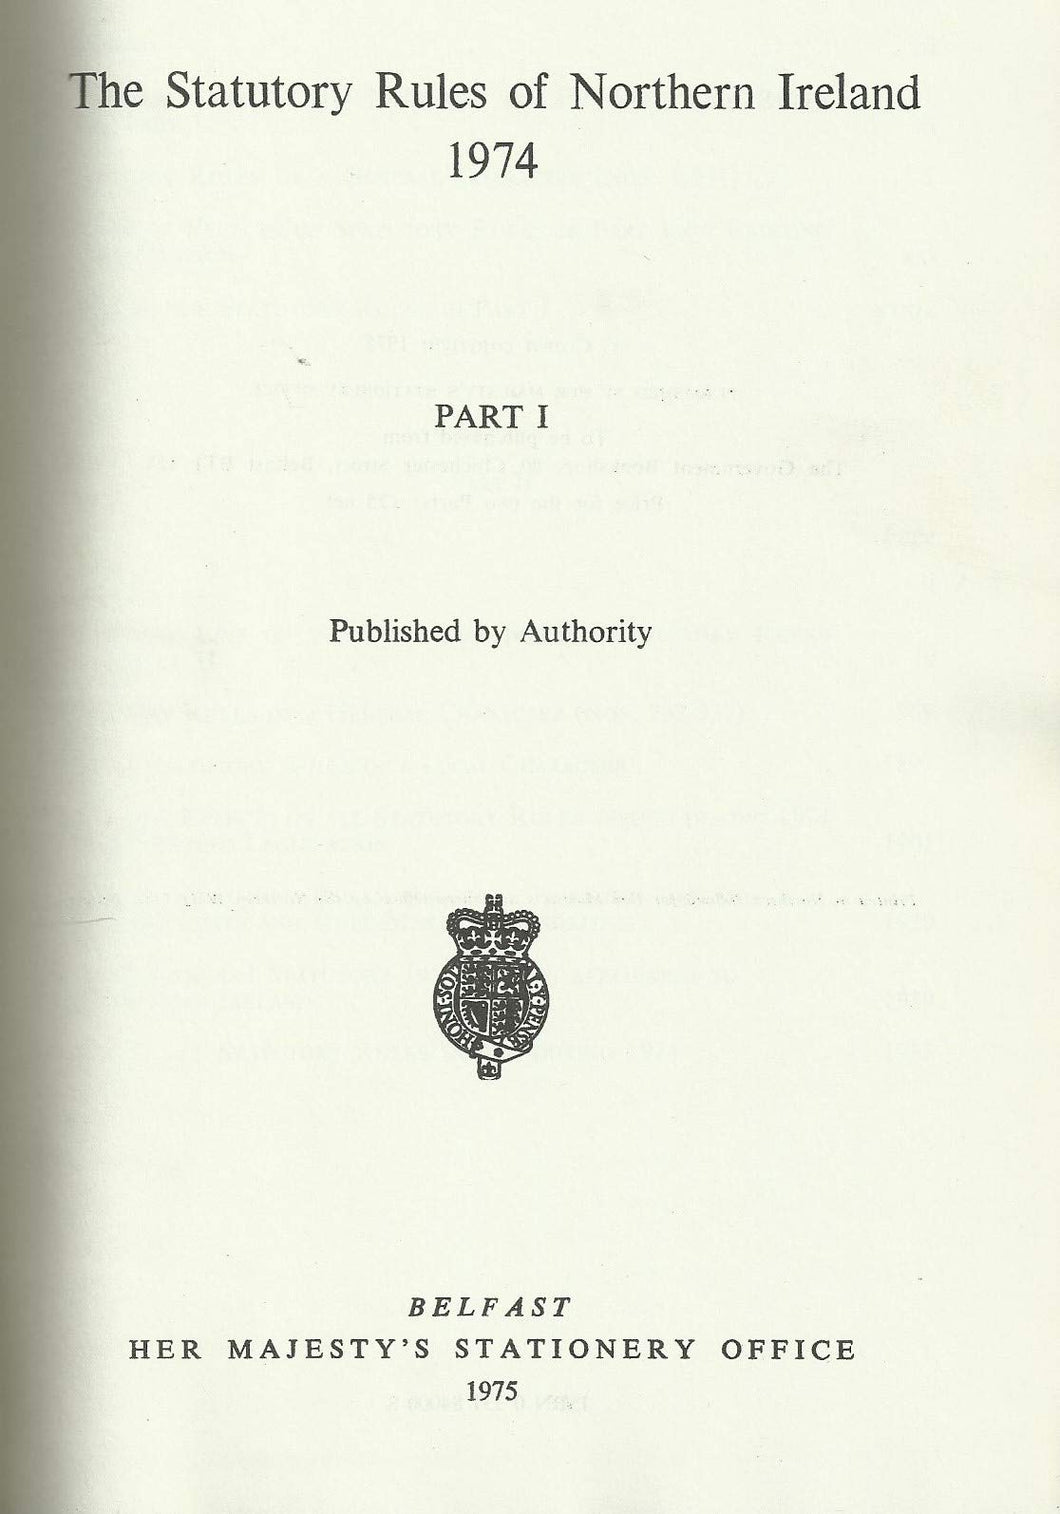 Northern Ireland Statutory Rules and Orders 1974, Part I - The Statutory Rules and Orders of Northern Ireland